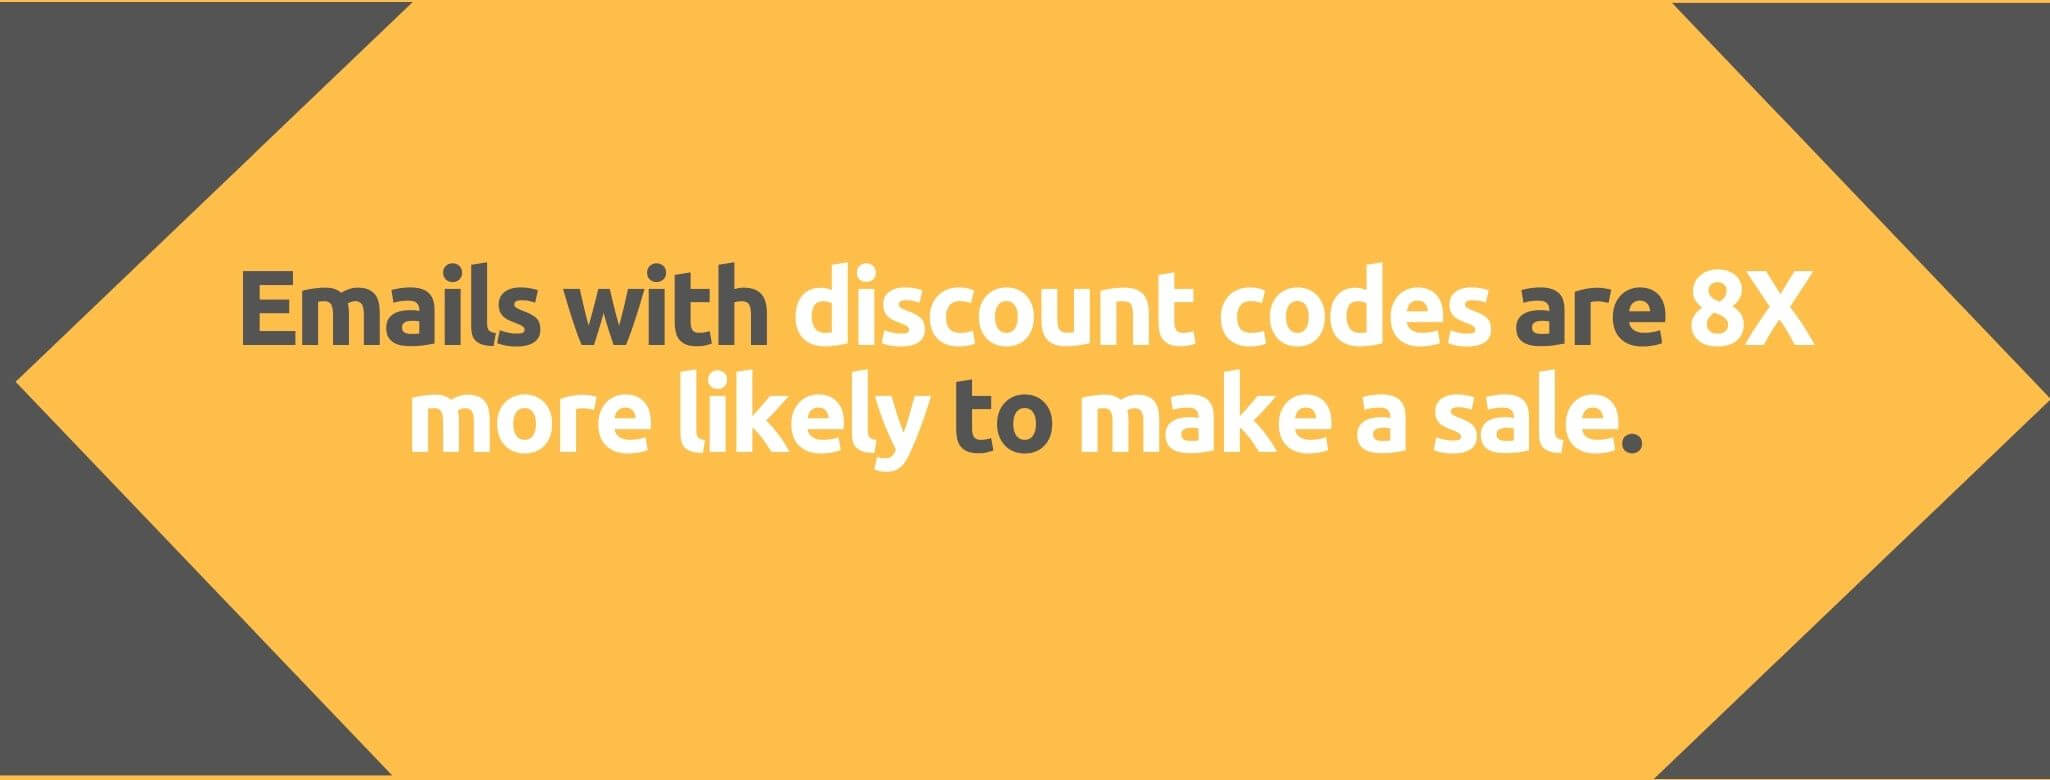 Emails with discount codes are 8 times more likely to make a sale - 80+ Email Marketing Stats - Replyco Helpdesk Software for eCommerce